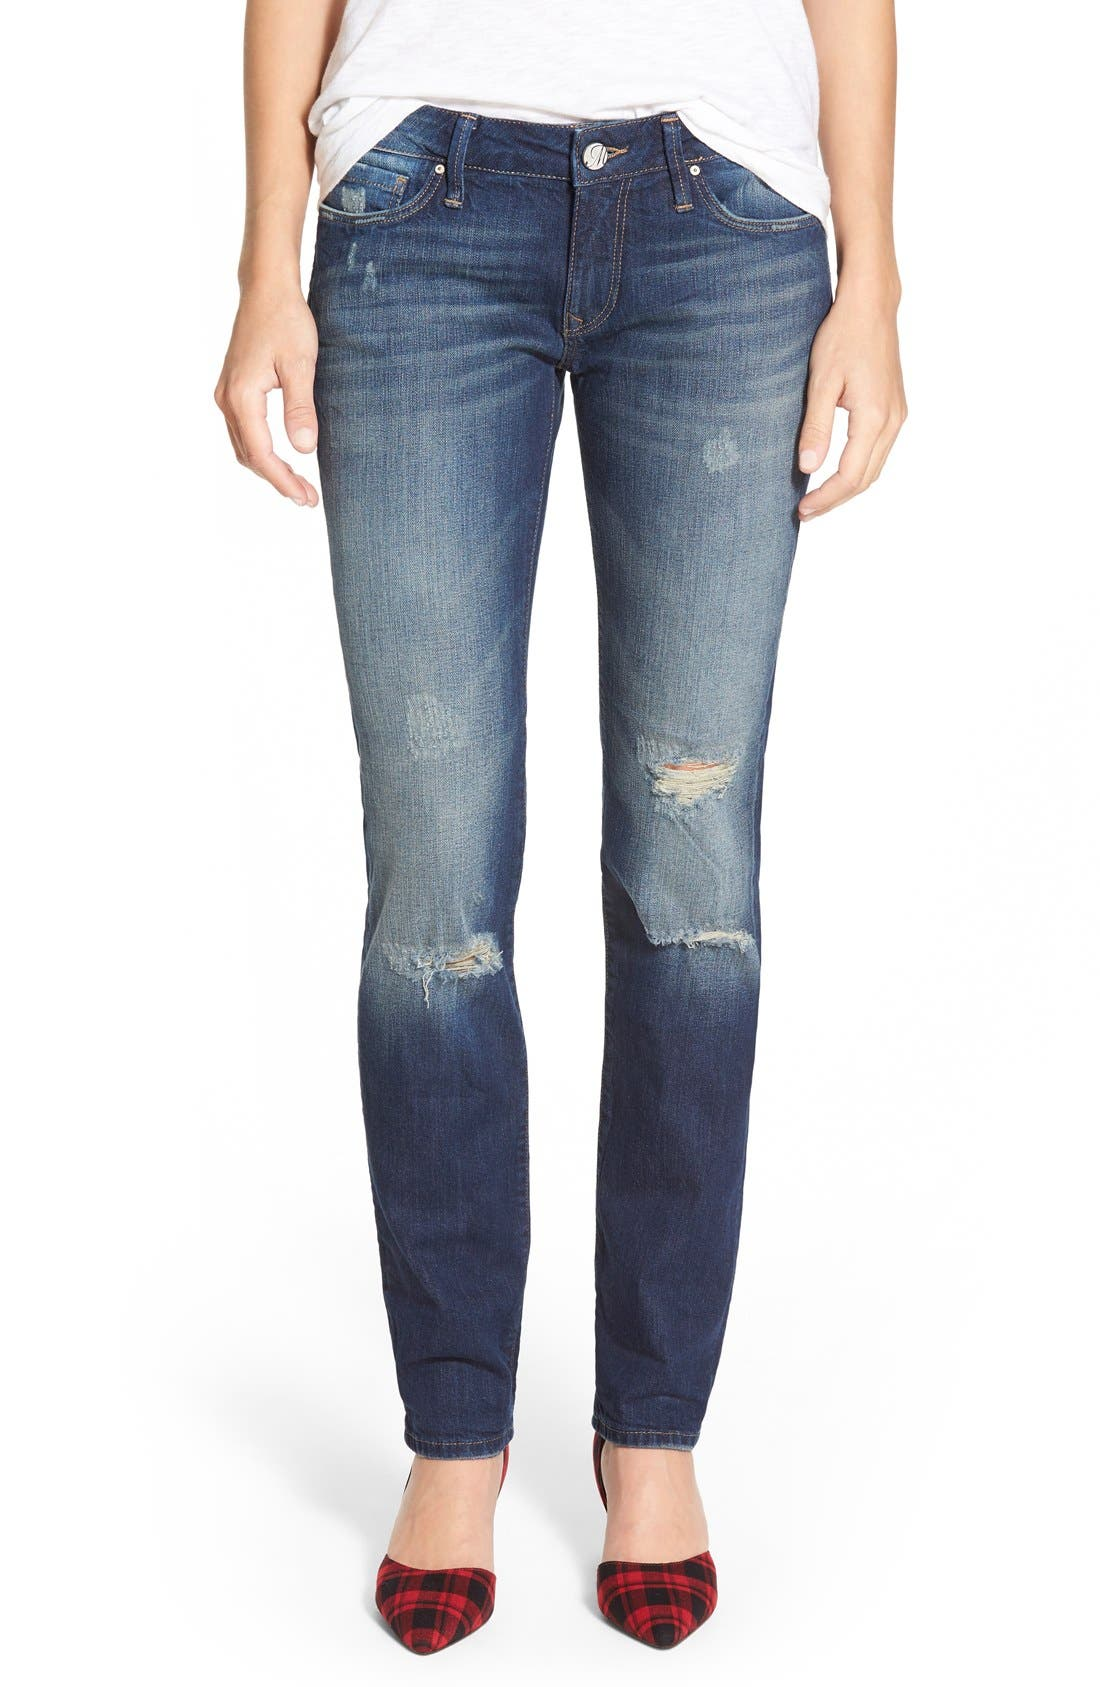 Alternate Image 1 Selected - Mavi Jeans 'Emma' Stretch Slim Boyfriend Jeans (Dark Ripped Authentic)